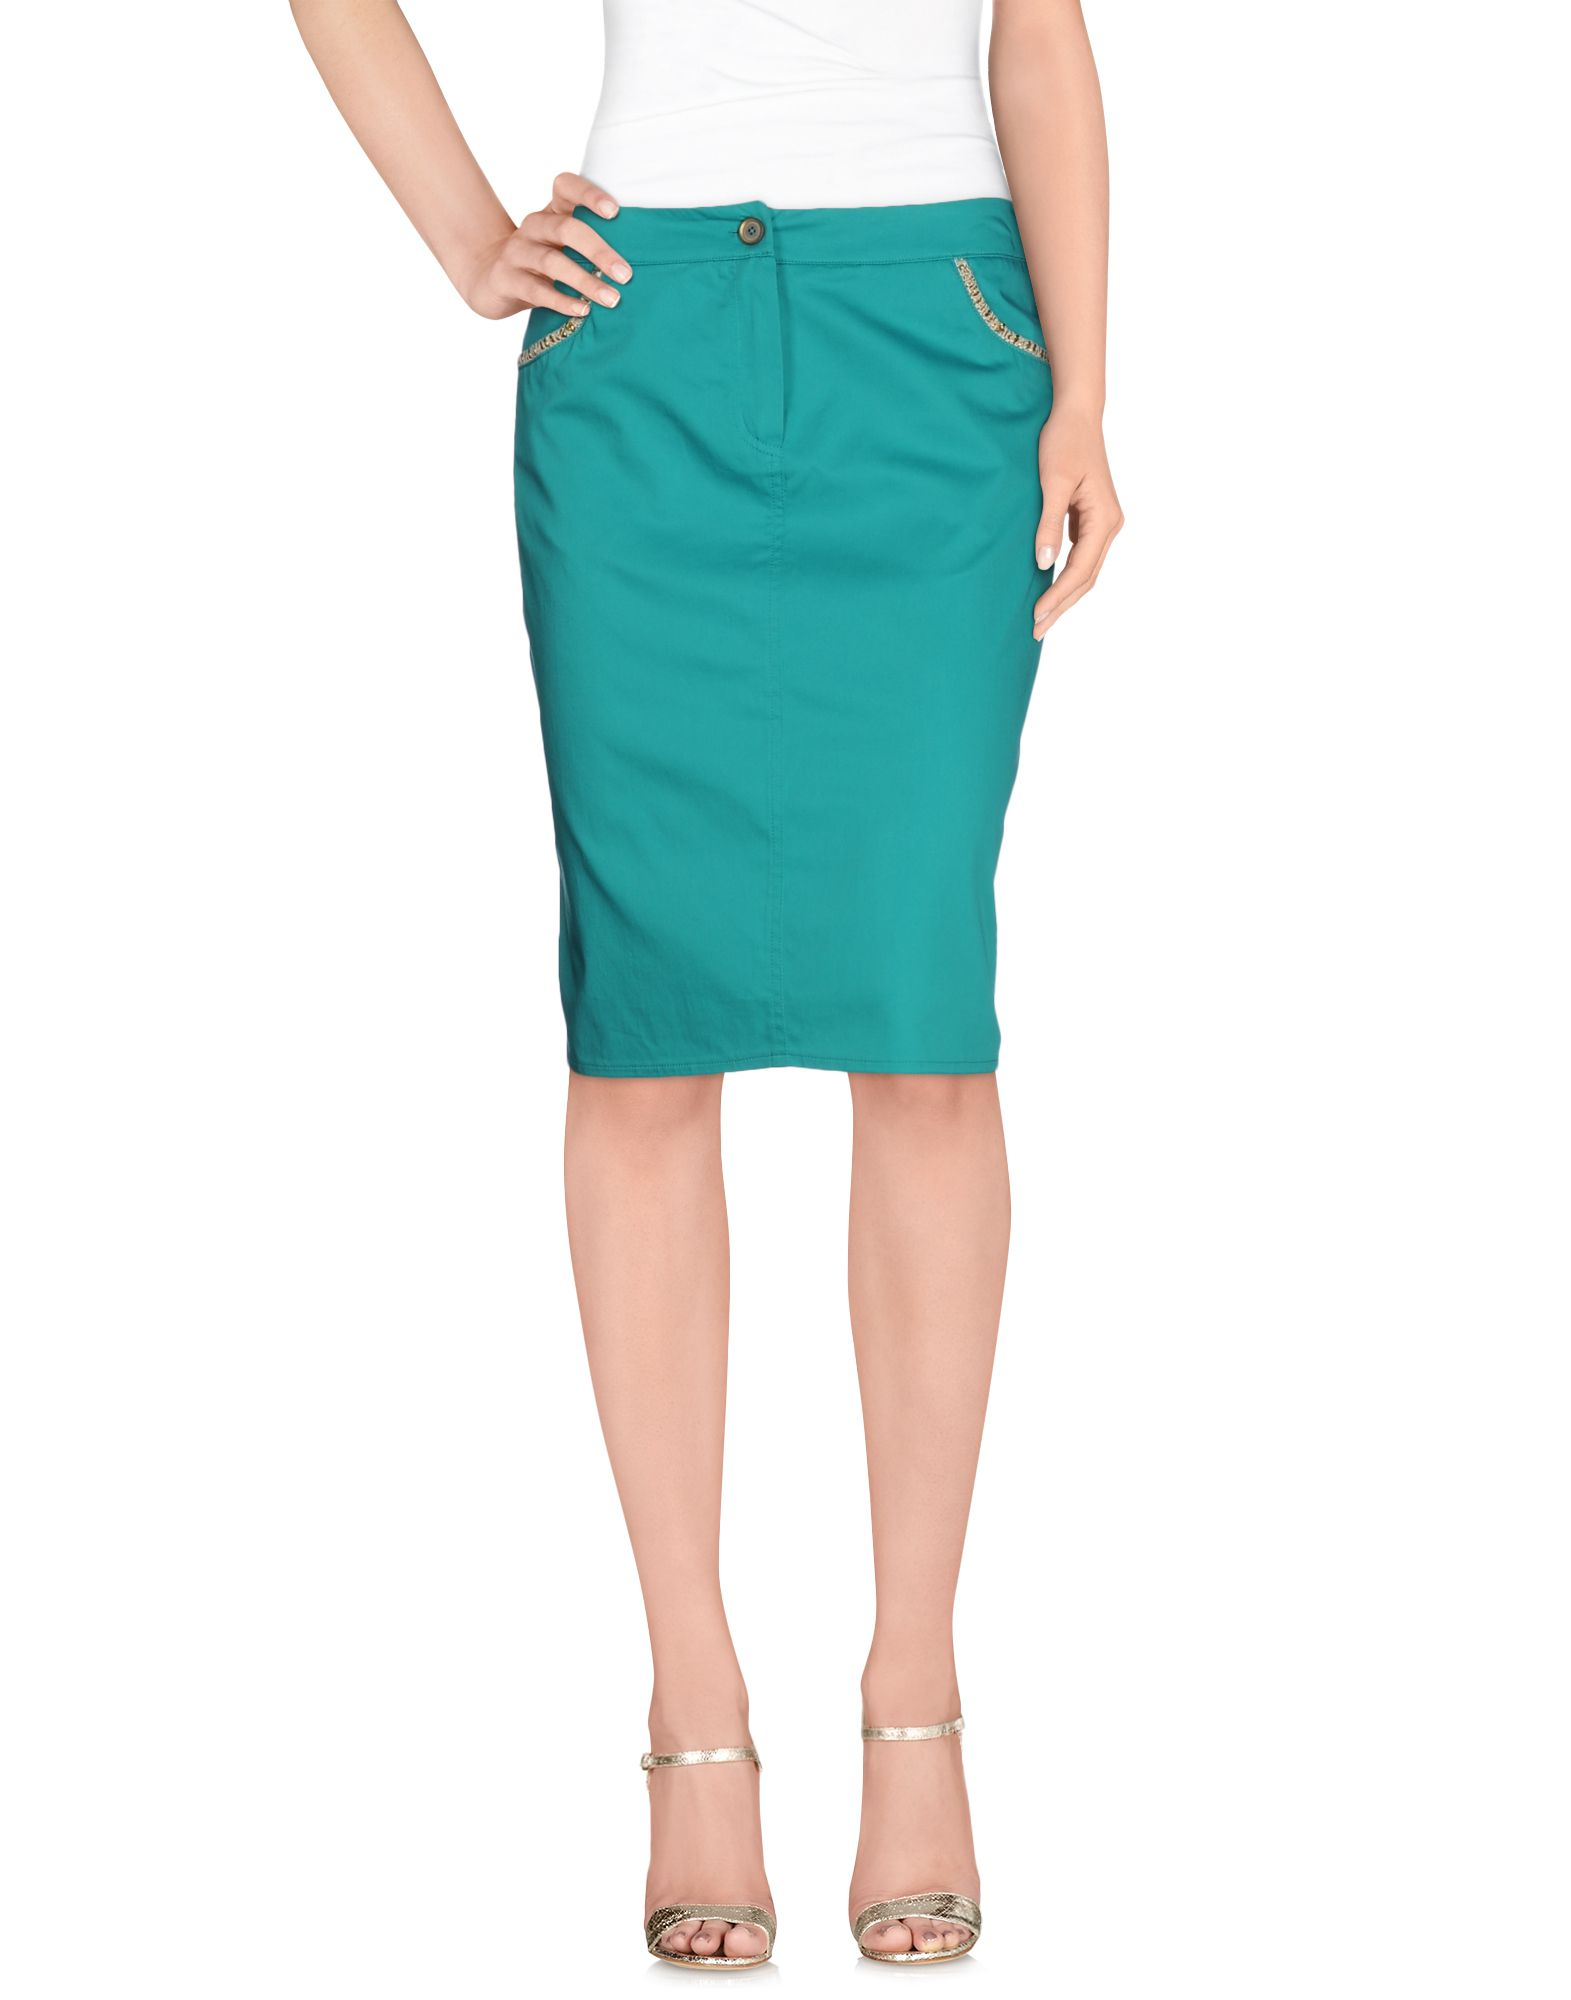 GIULIA VALLI Knee length skirts